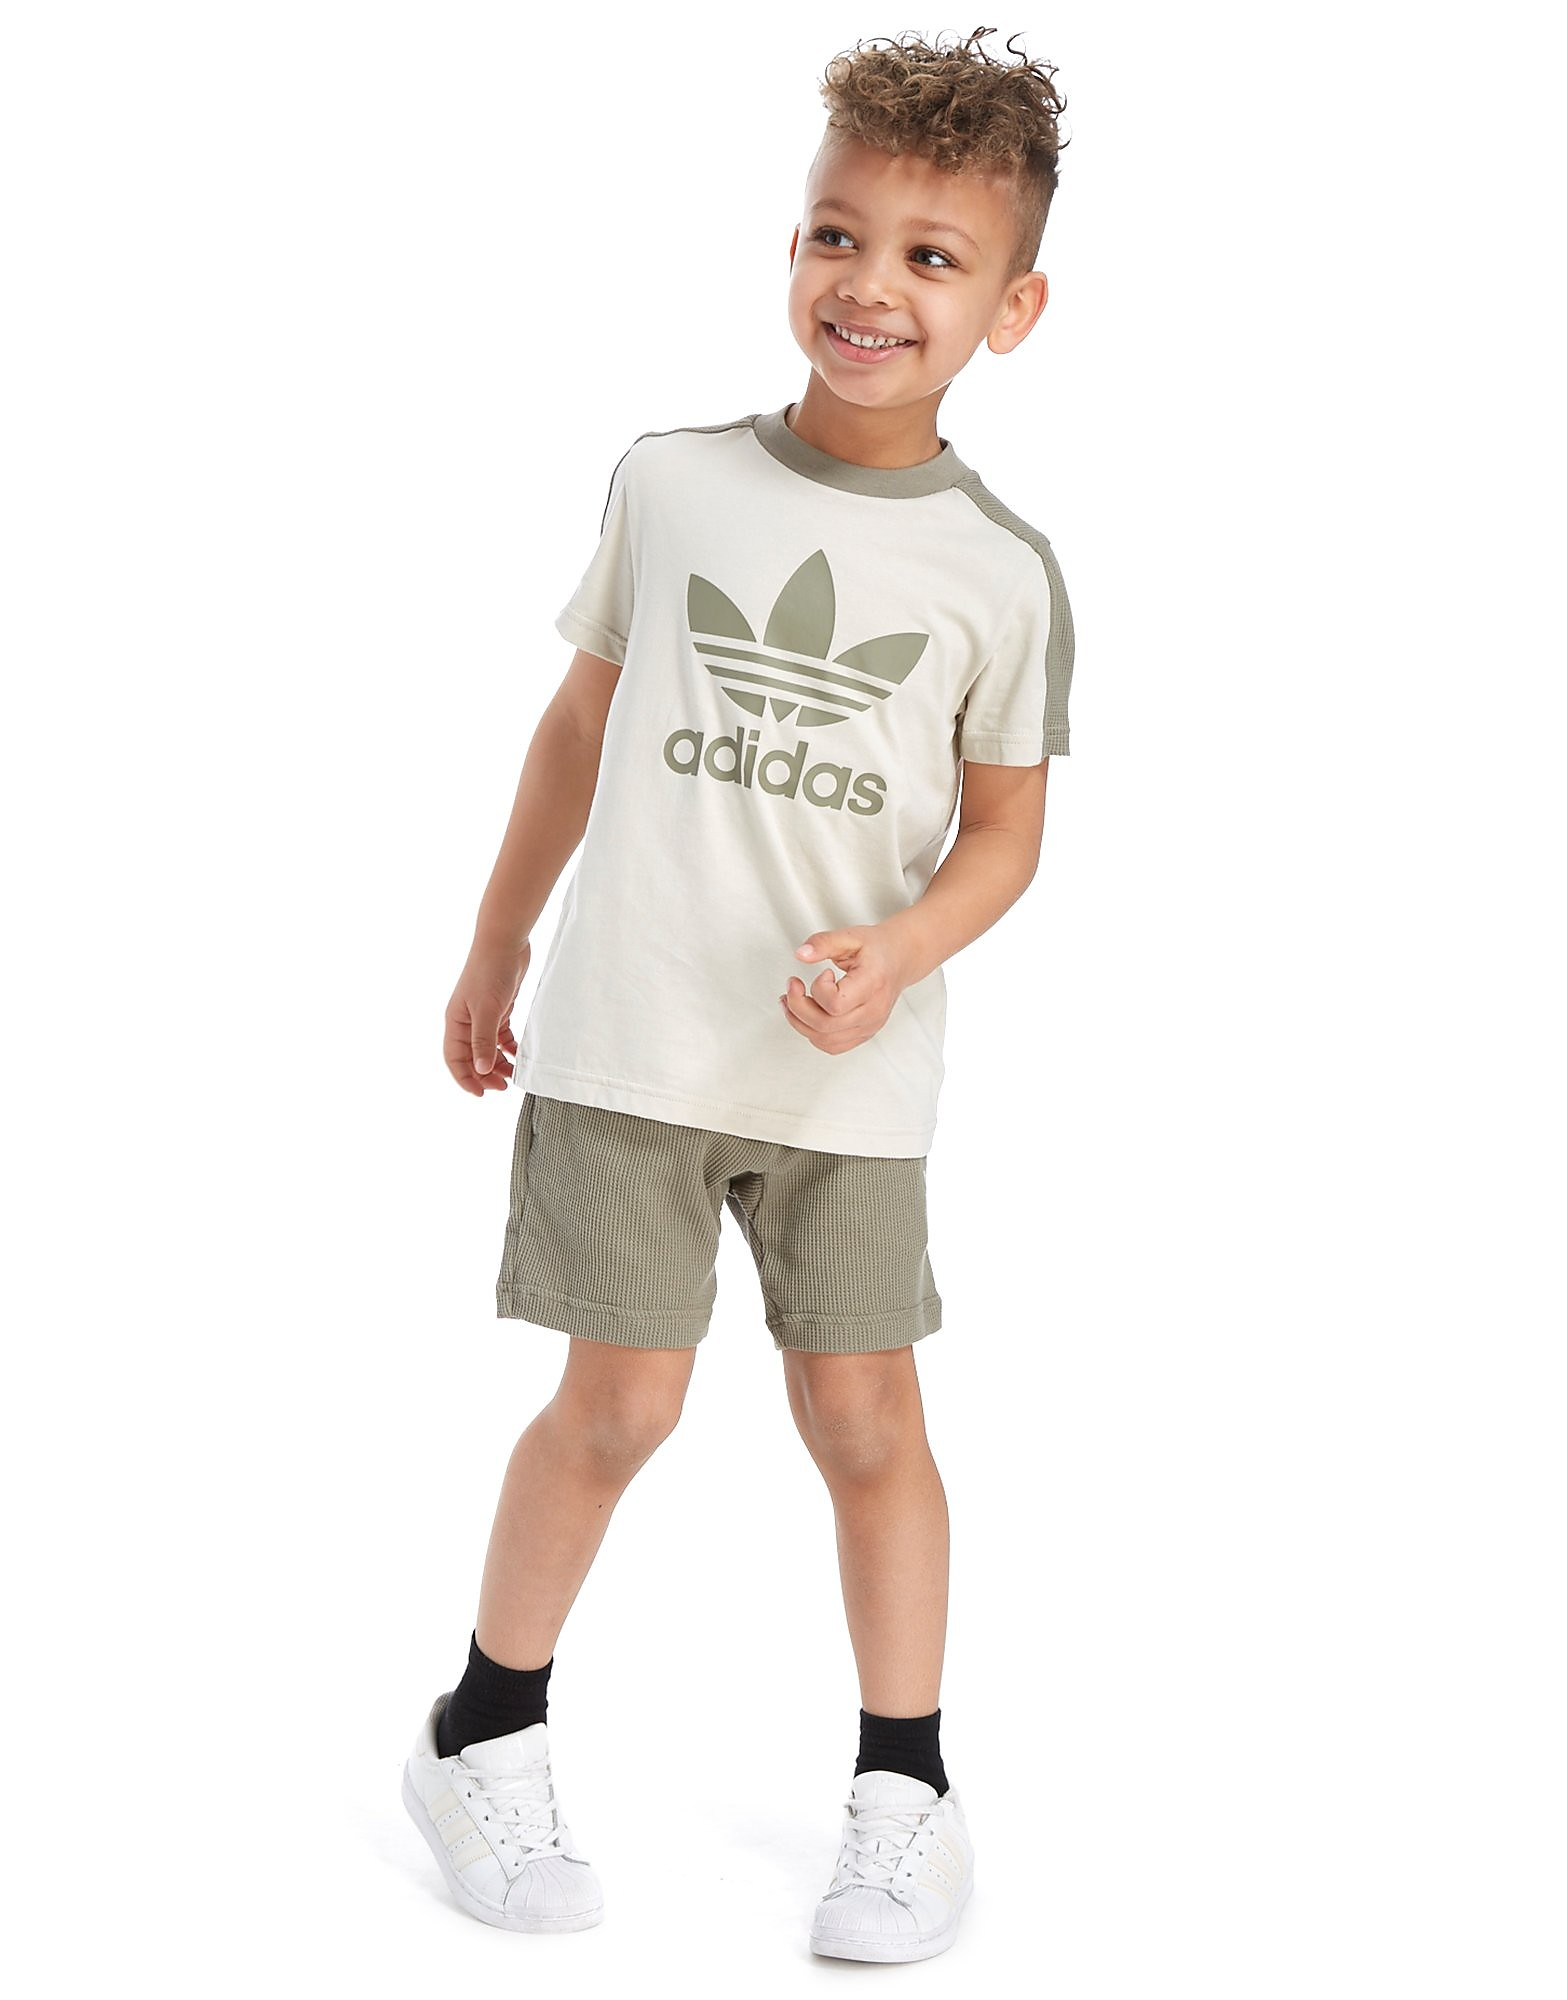 adidas Originals Moa T-Shirt & Shorts Set Children's